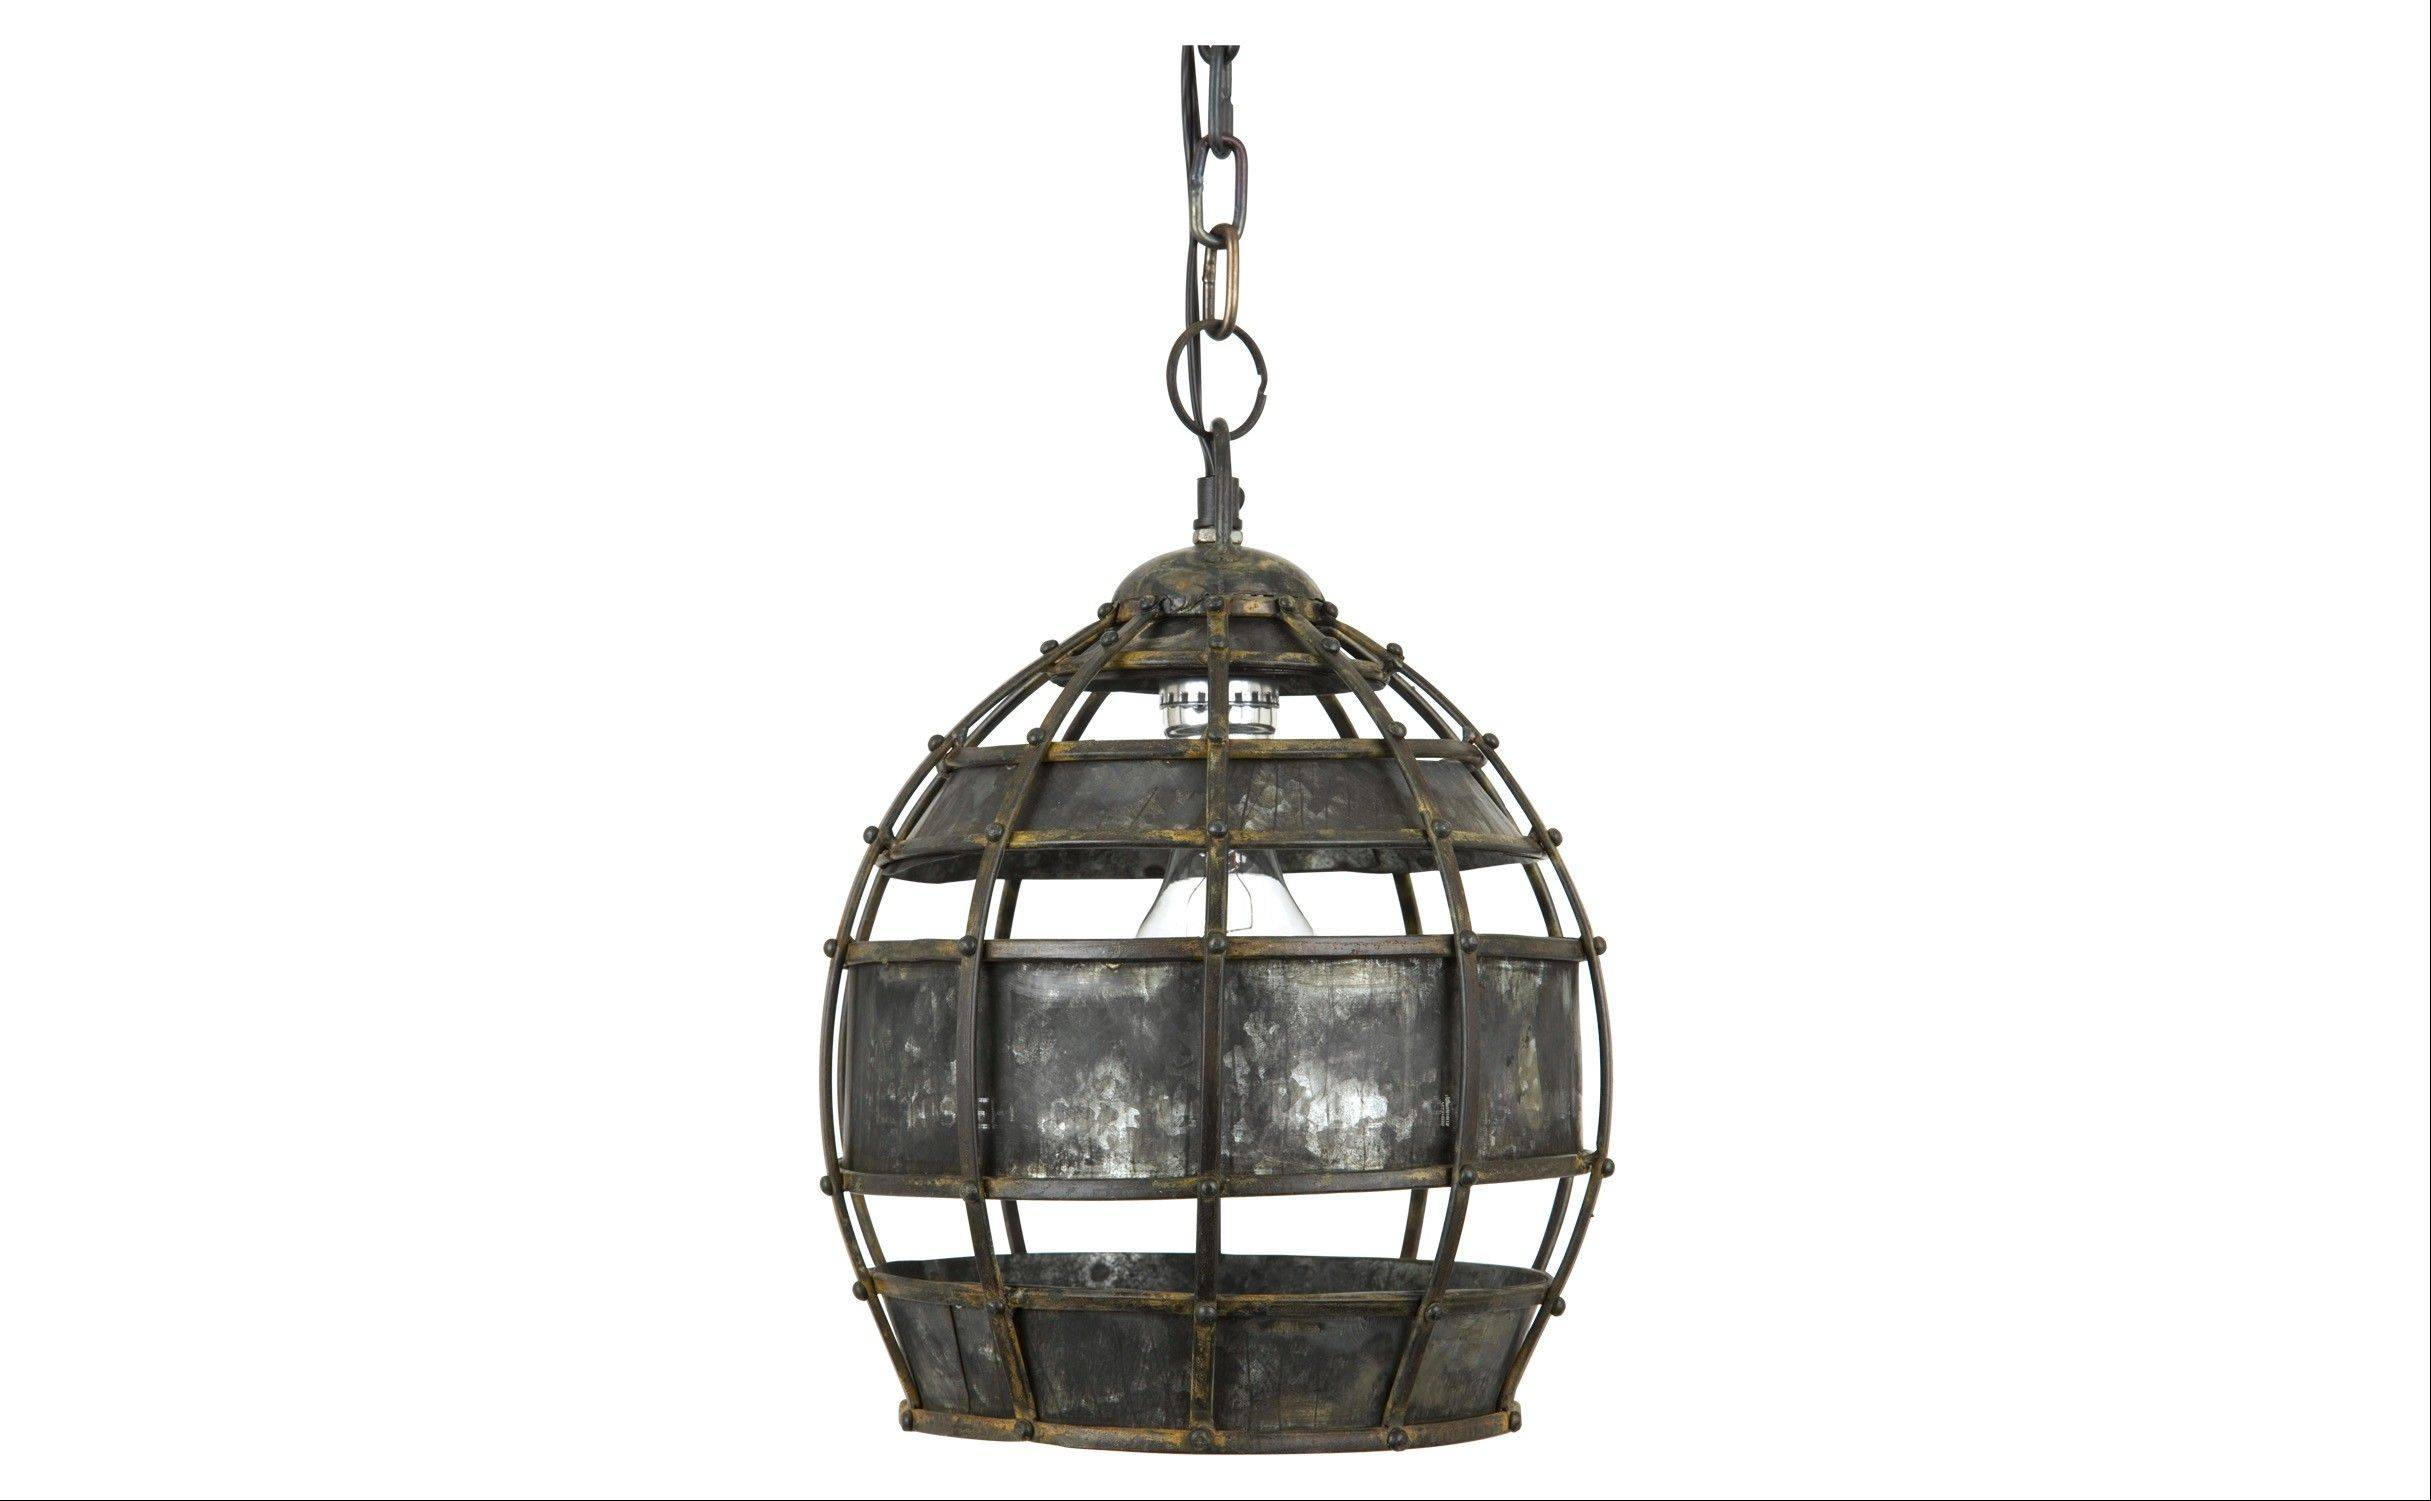 This Ludlam pendant lamp, with its cage of riveted metal, has a modernized, industrial look.